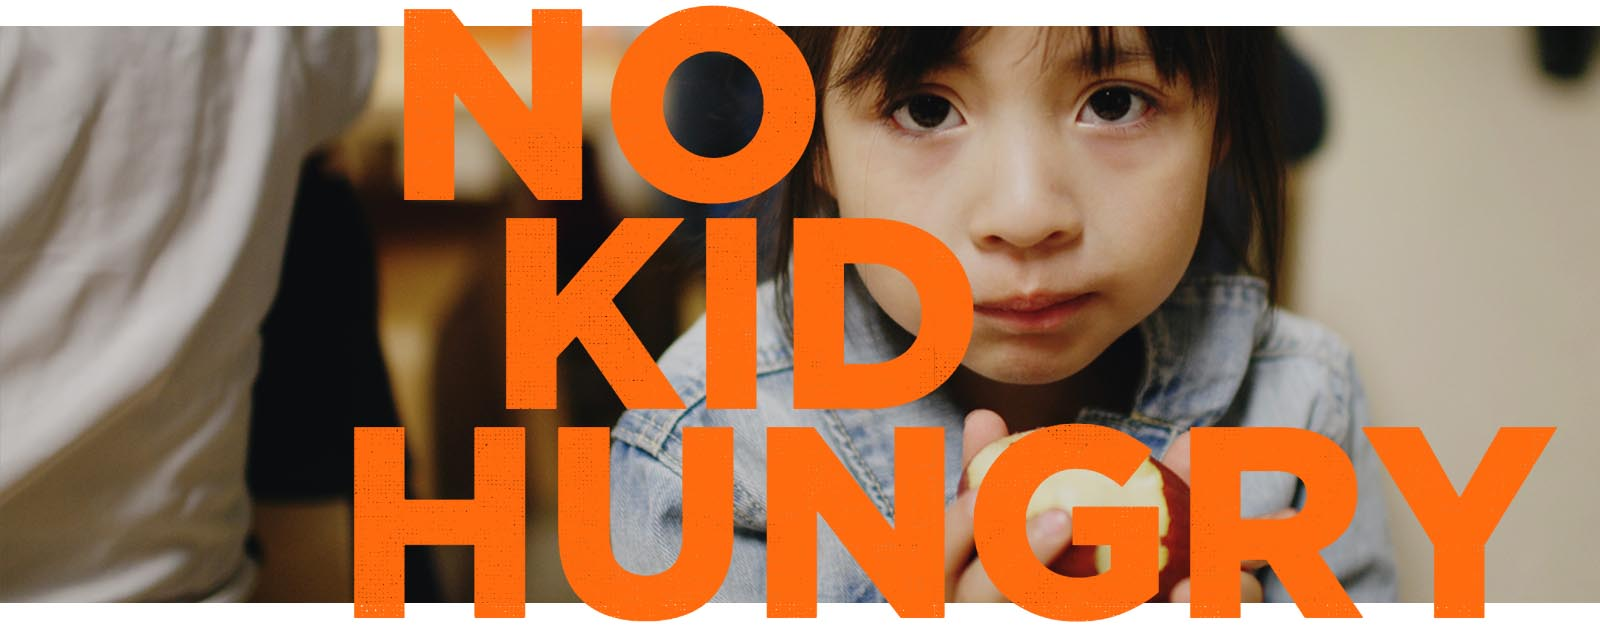 No Kid Hungry Banner Image